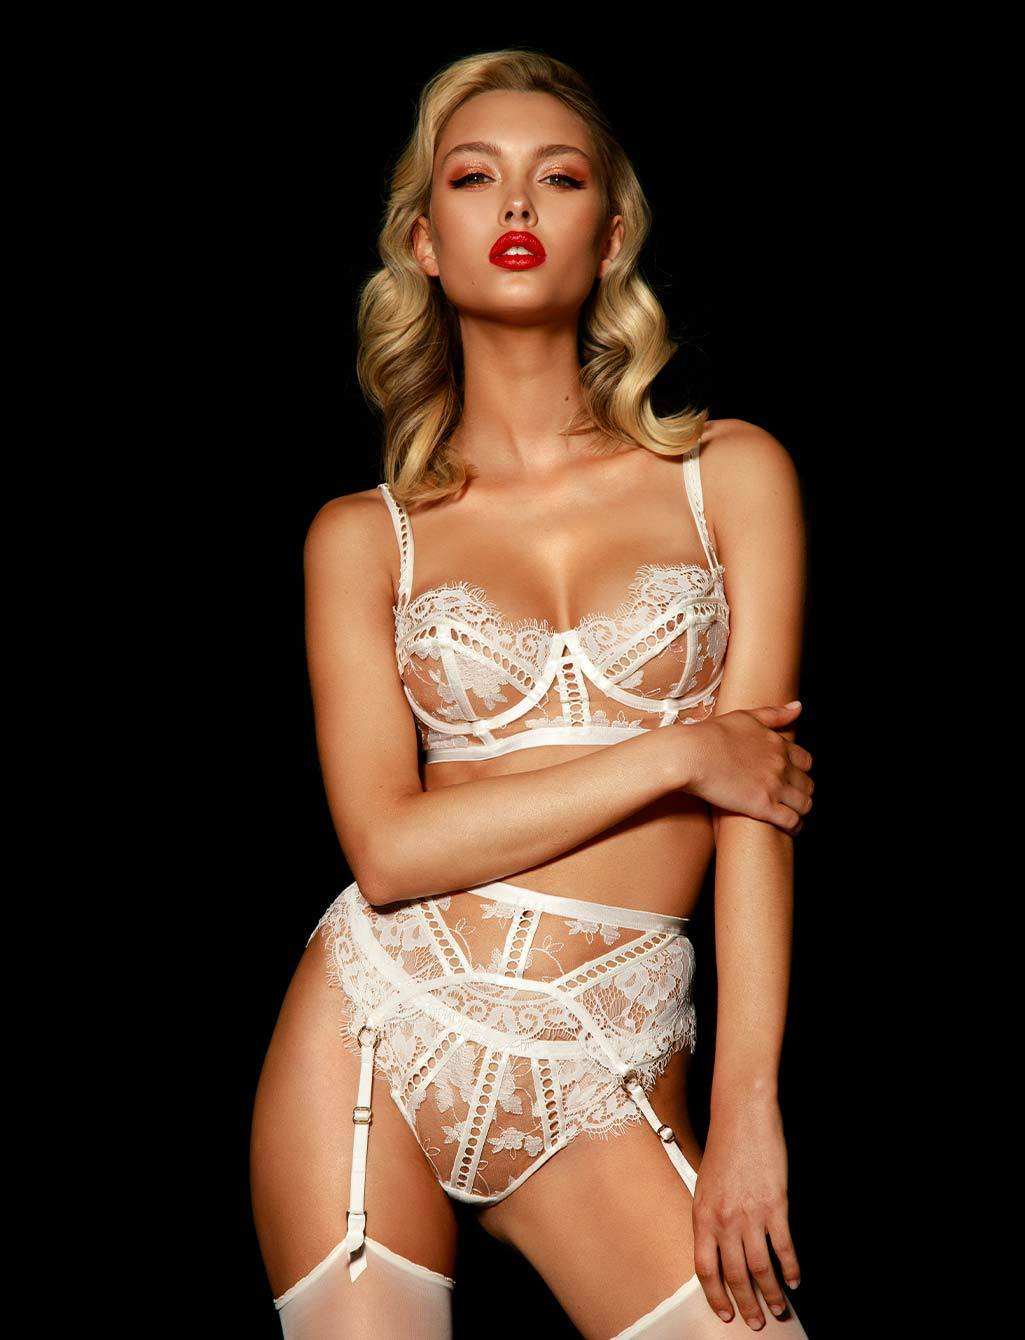 Molly Ivory Bridal Lace Lingerie Set | Shop  Lingerie Honey Birdette